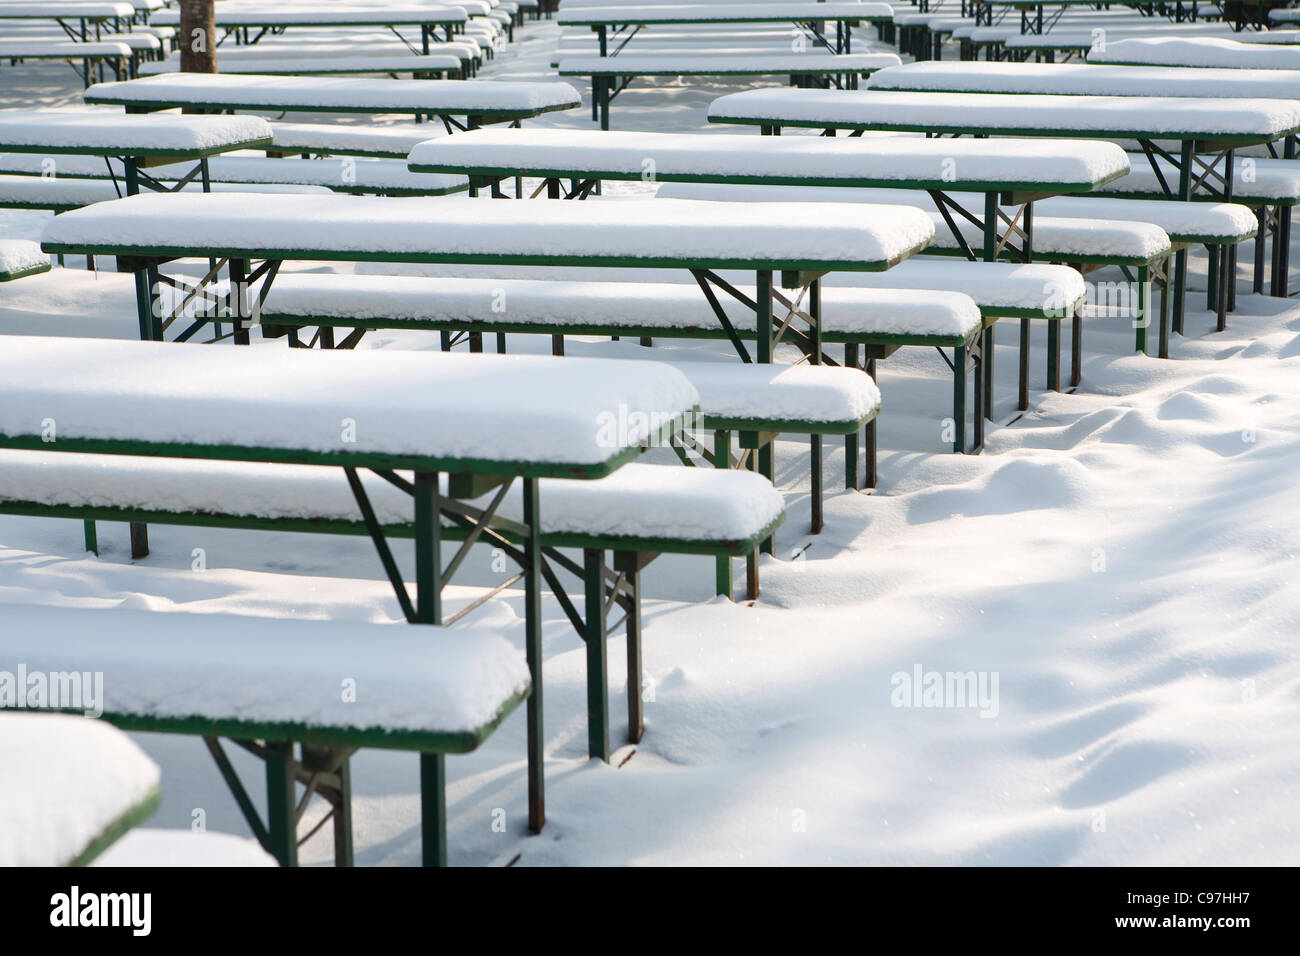 Swell Snow Covered Beer Tables And Benches In English Garden Evergreenethics Interior Chair Design Evergreenethicsorg